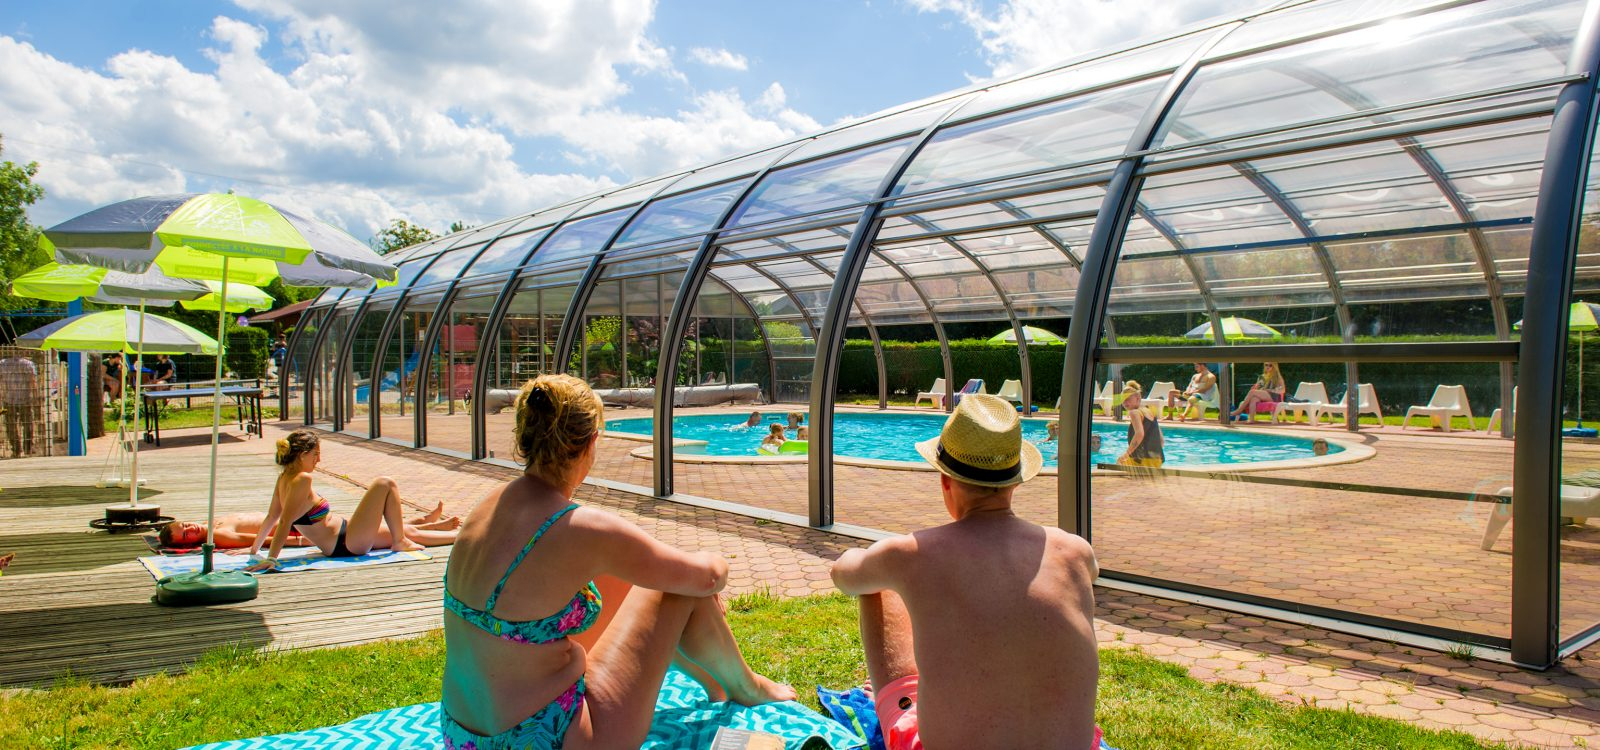 The Luxury Of A Covered Pool And The Charm Of A Stream ... concernant Camping Var Avec Piscine